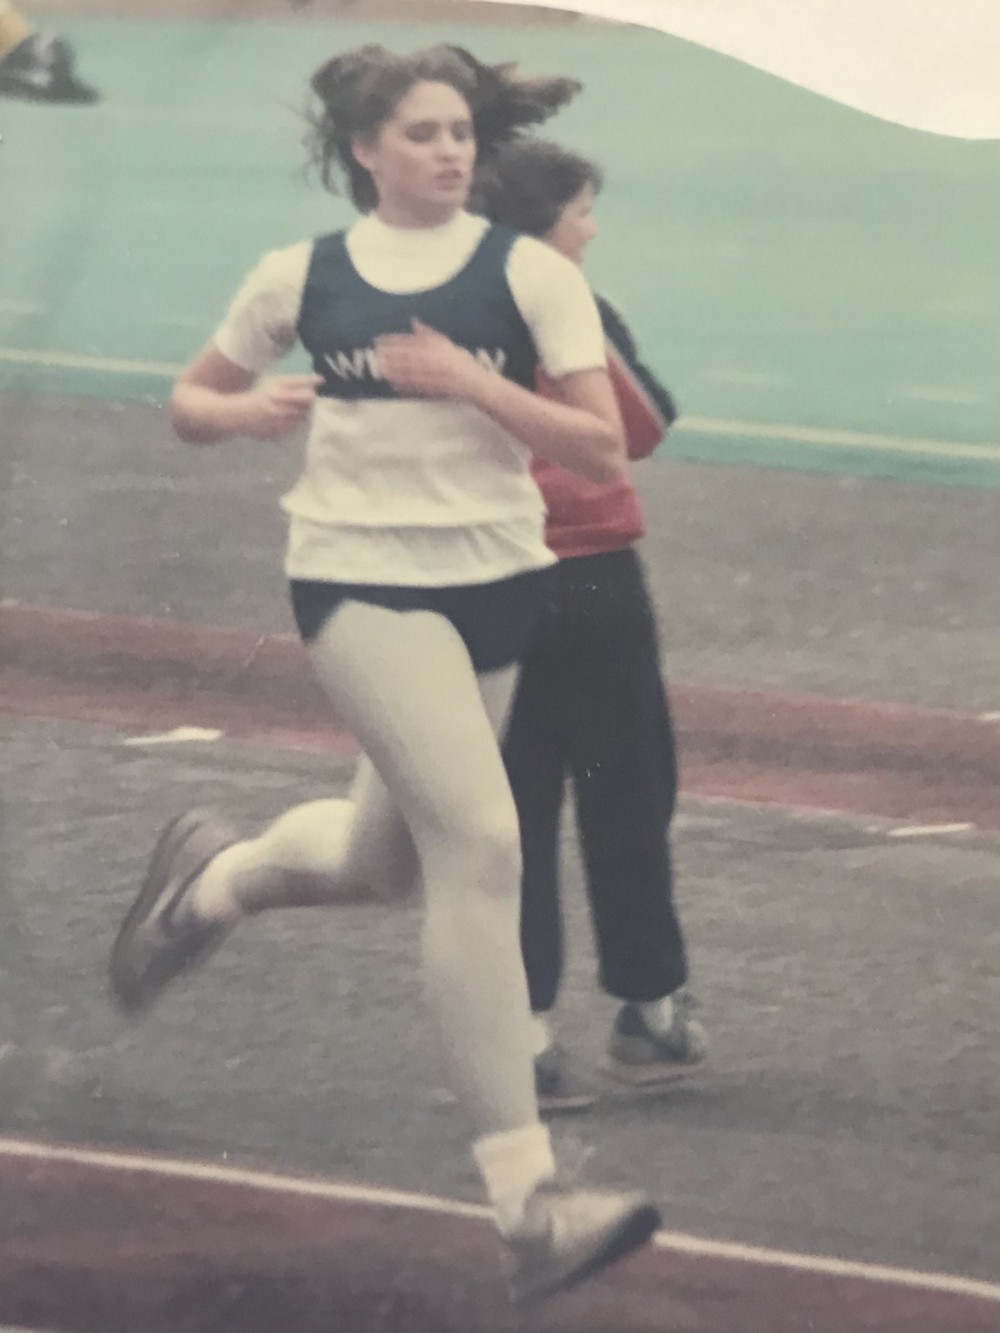 The author, running on a the track, competing in a race back in her younger days.